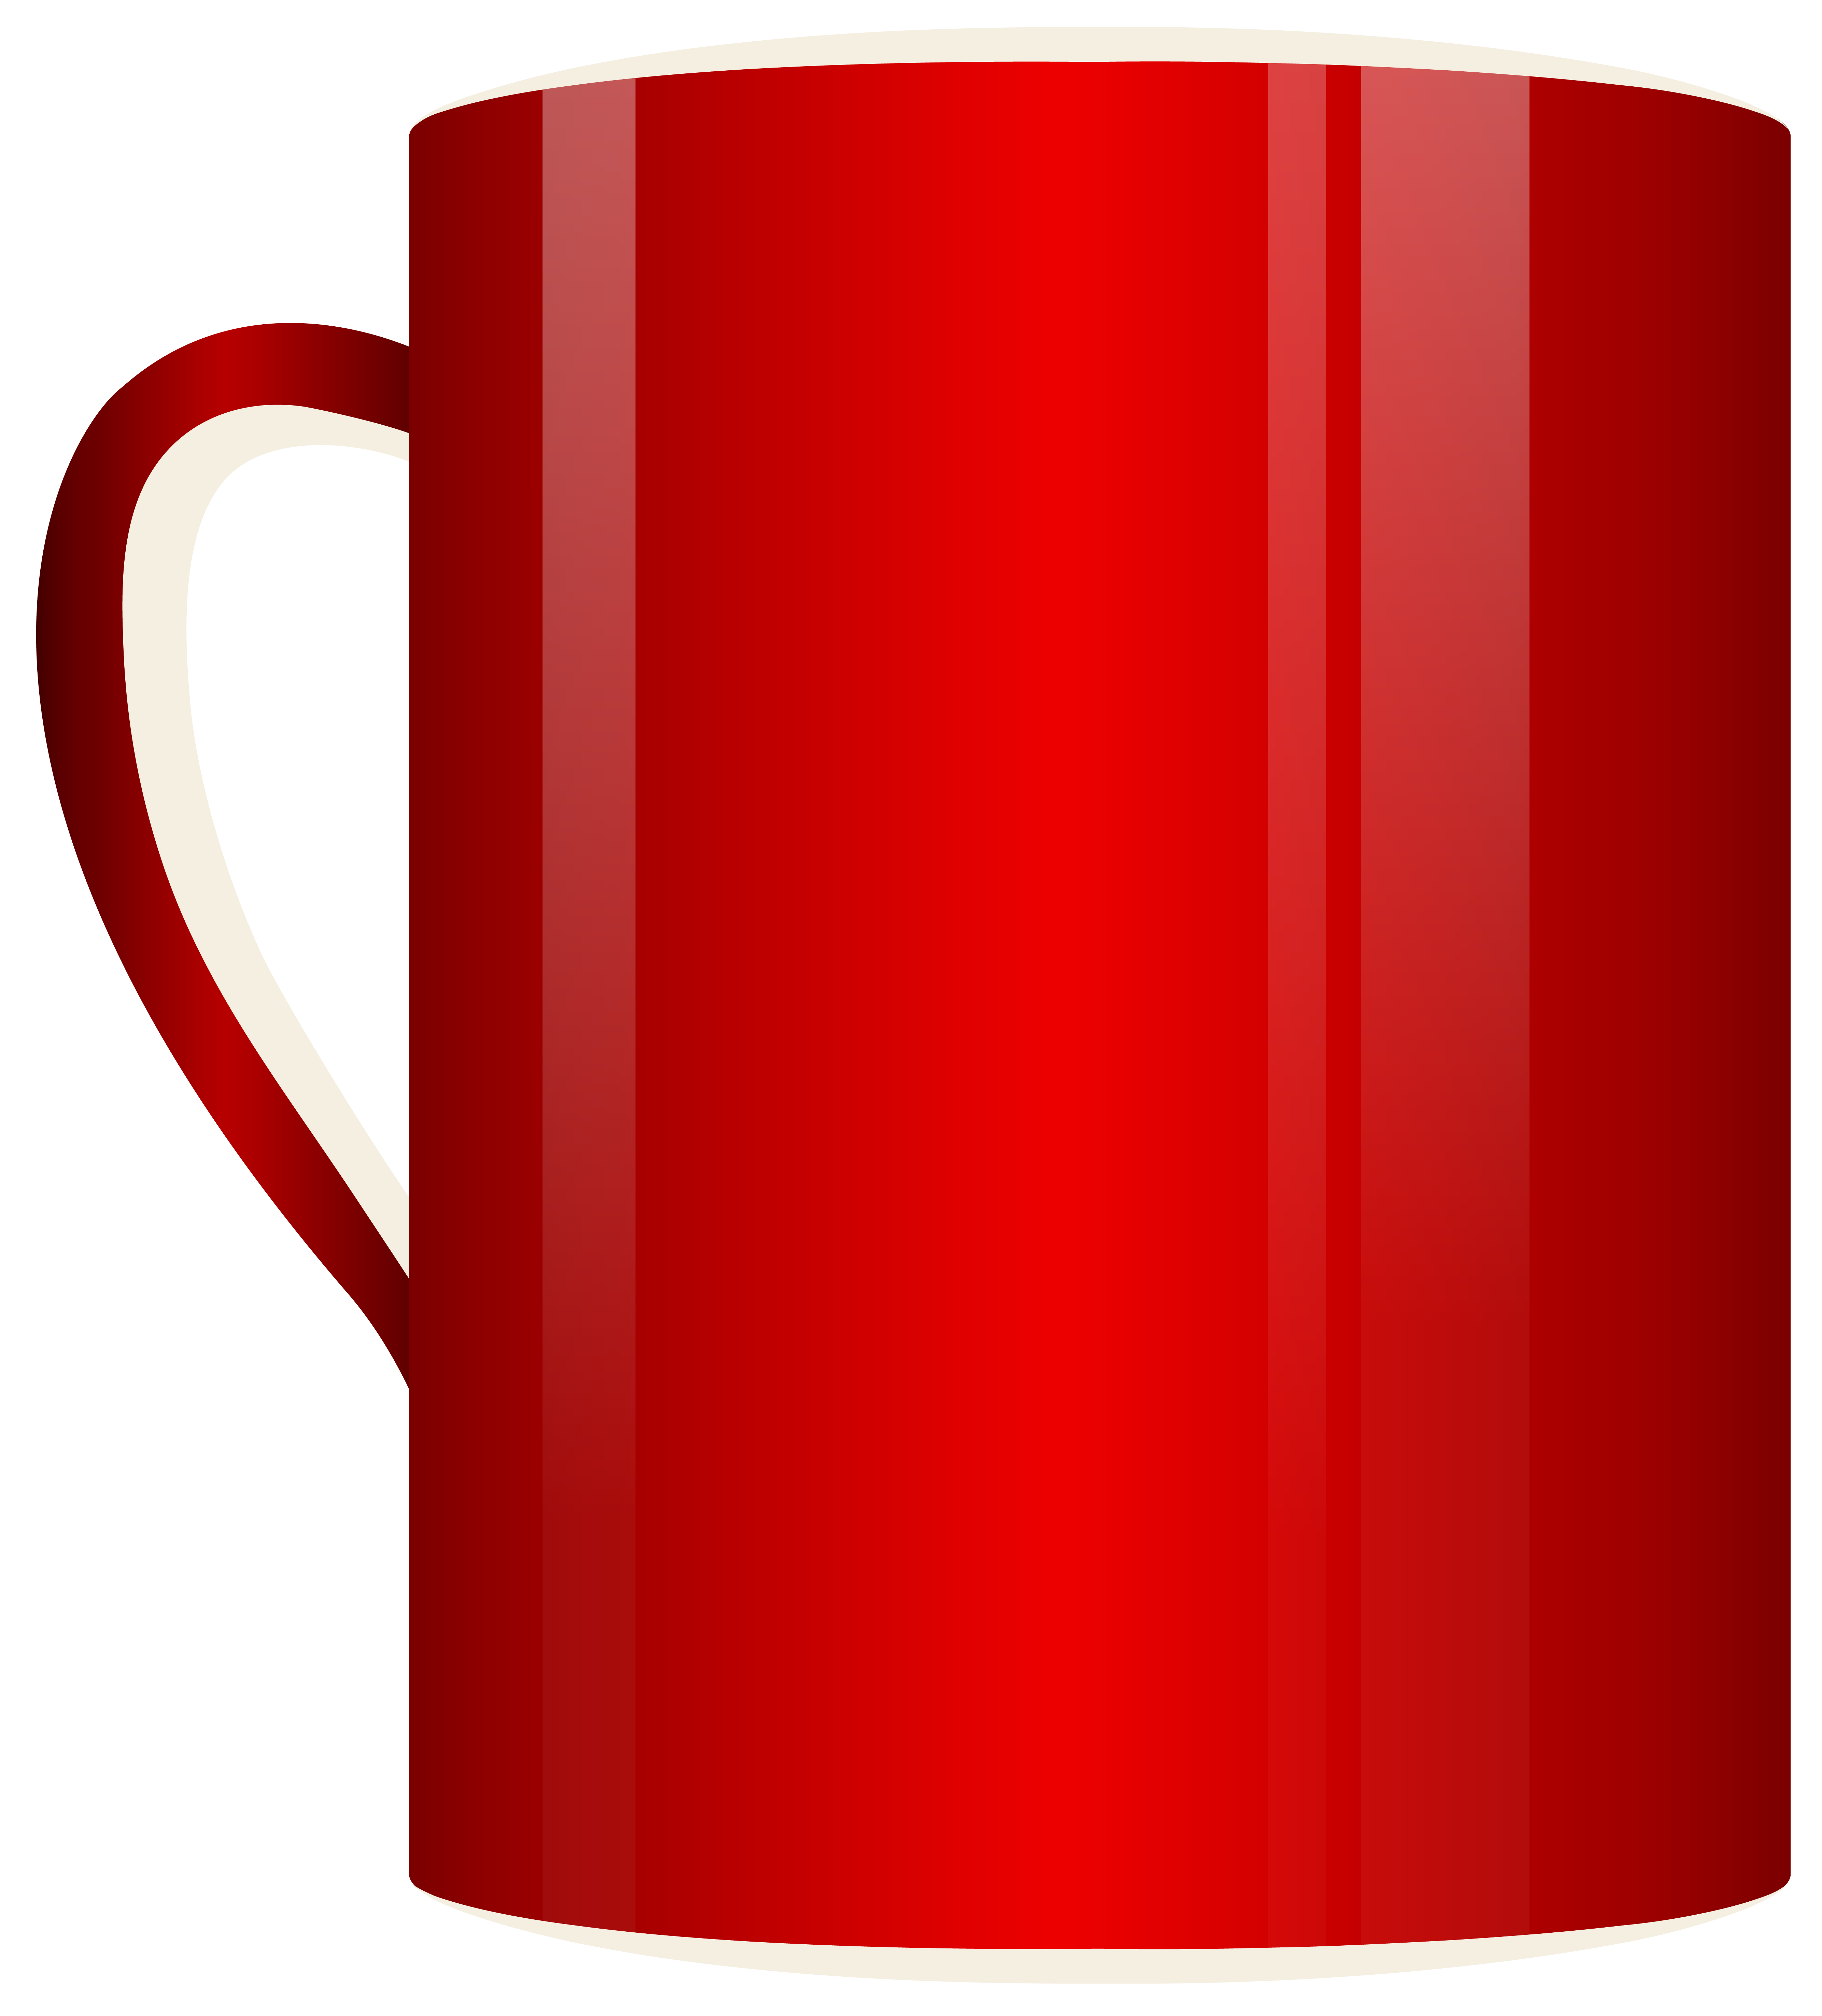 Mug clipart red cup Red Best Cup WEB PNG